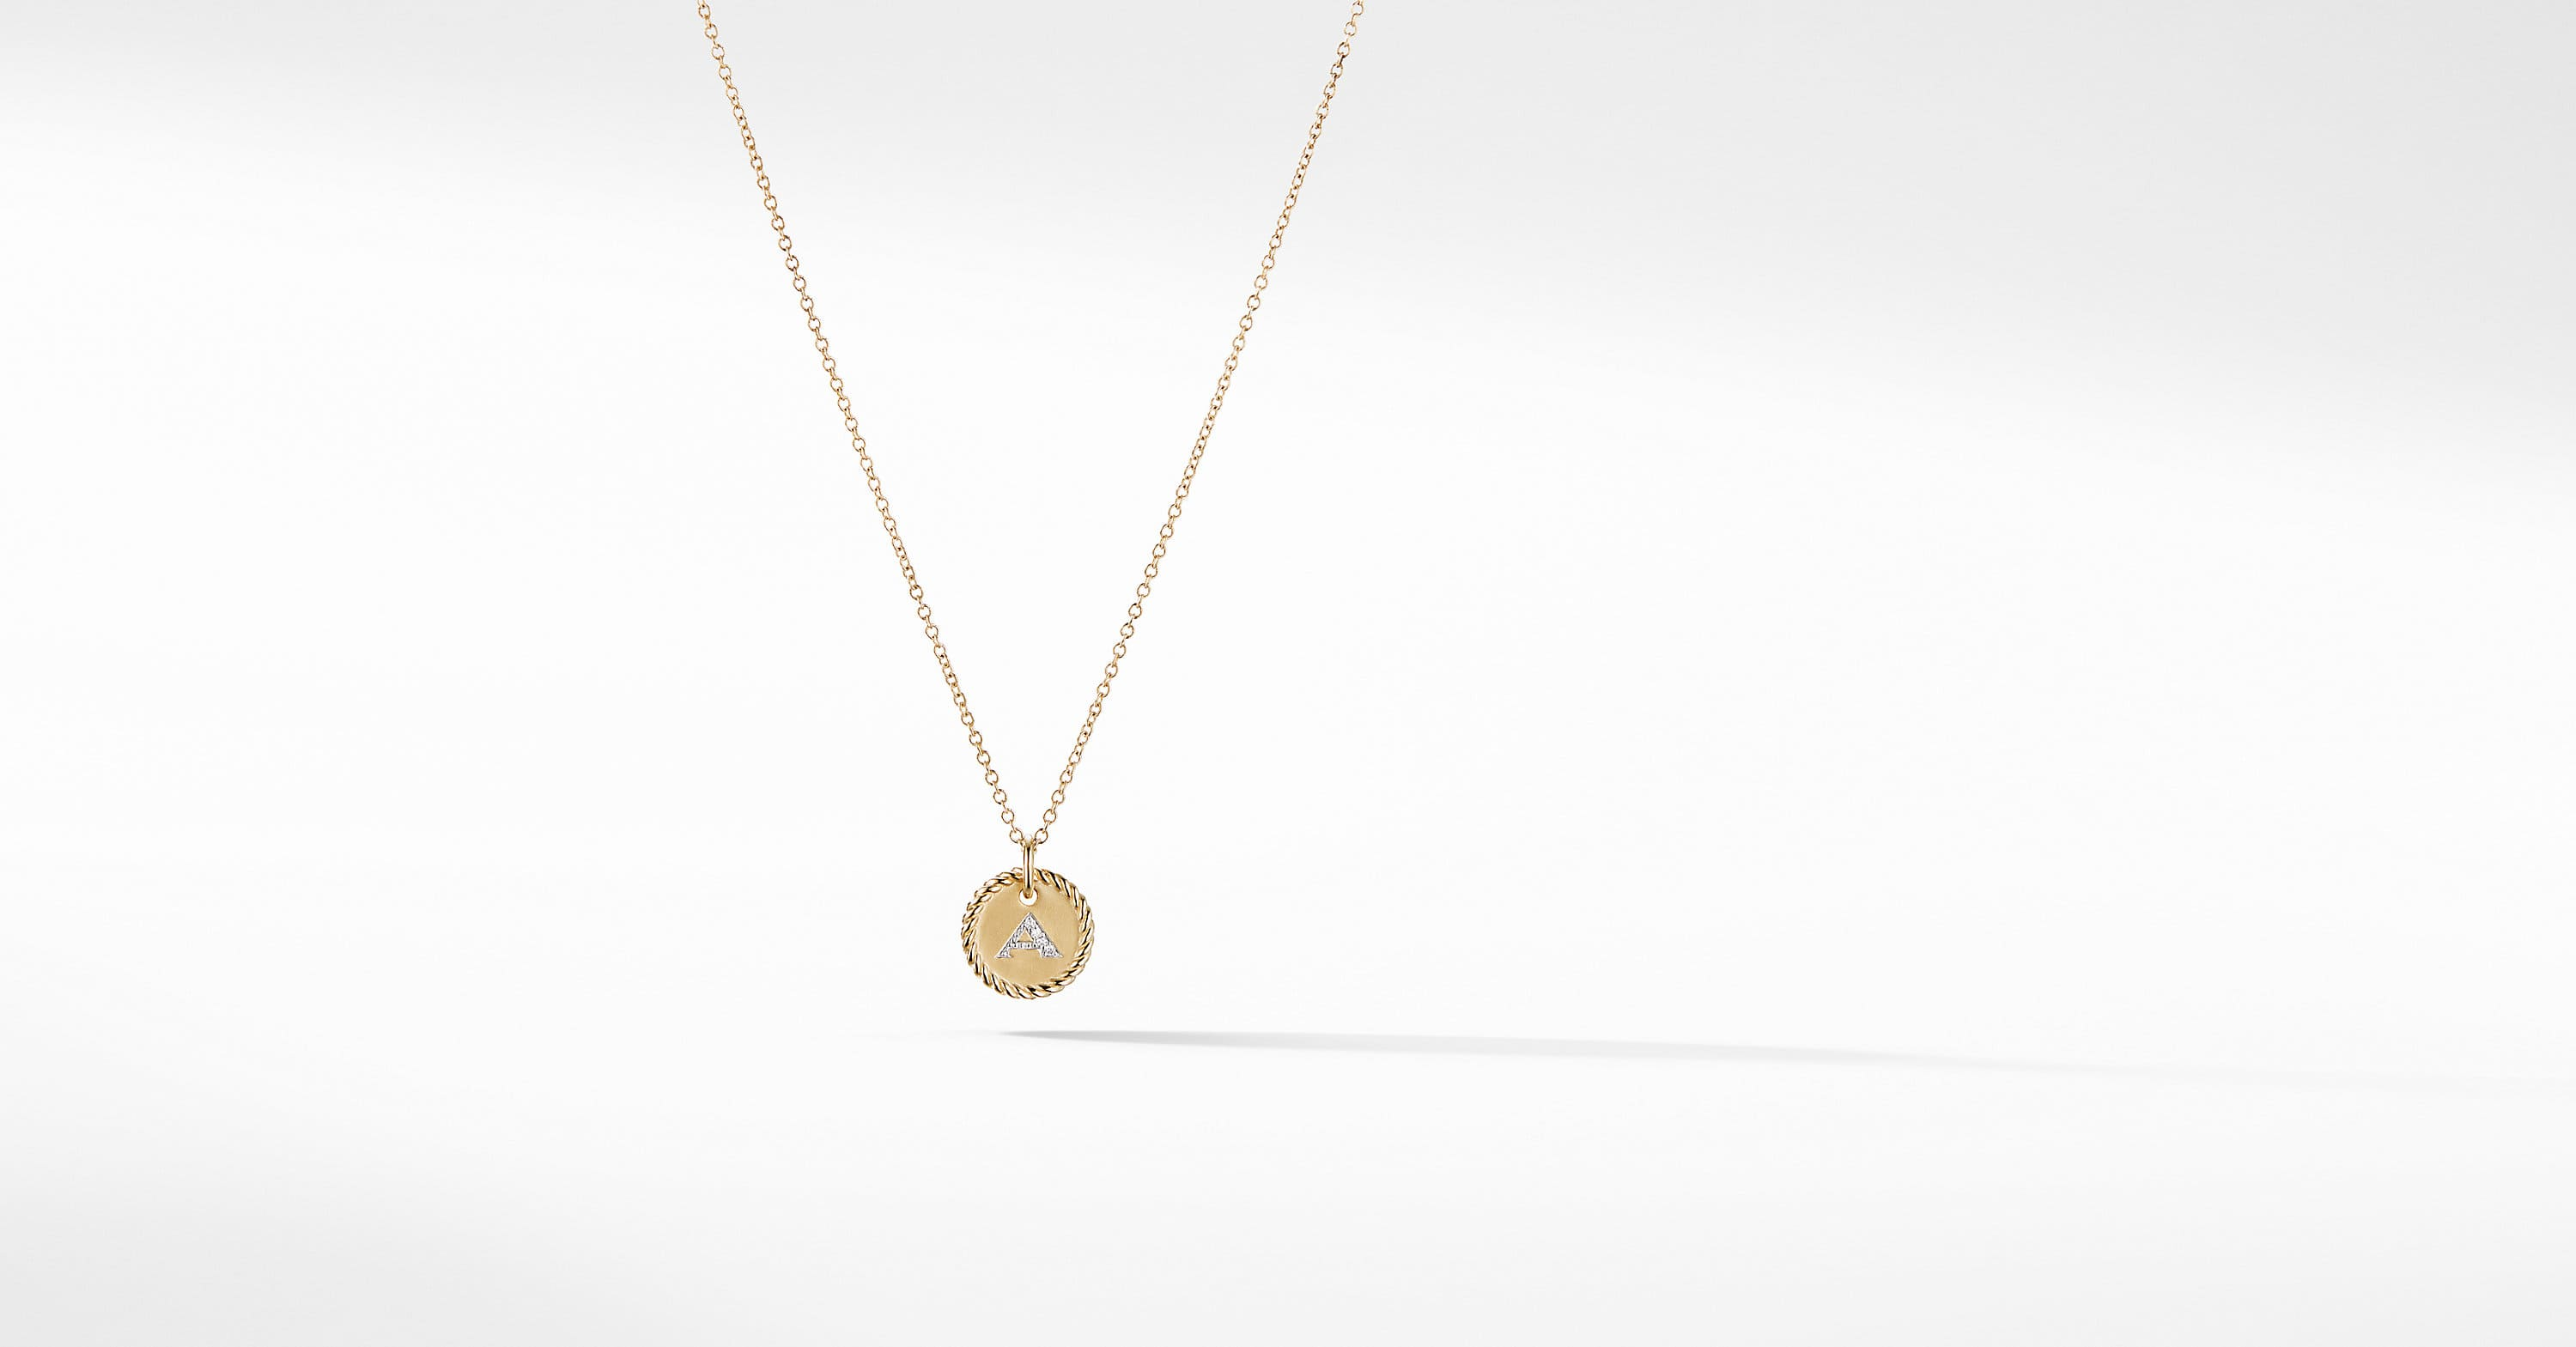 Initial Charm Necklace in 18K Yellow Gold with Diamonds